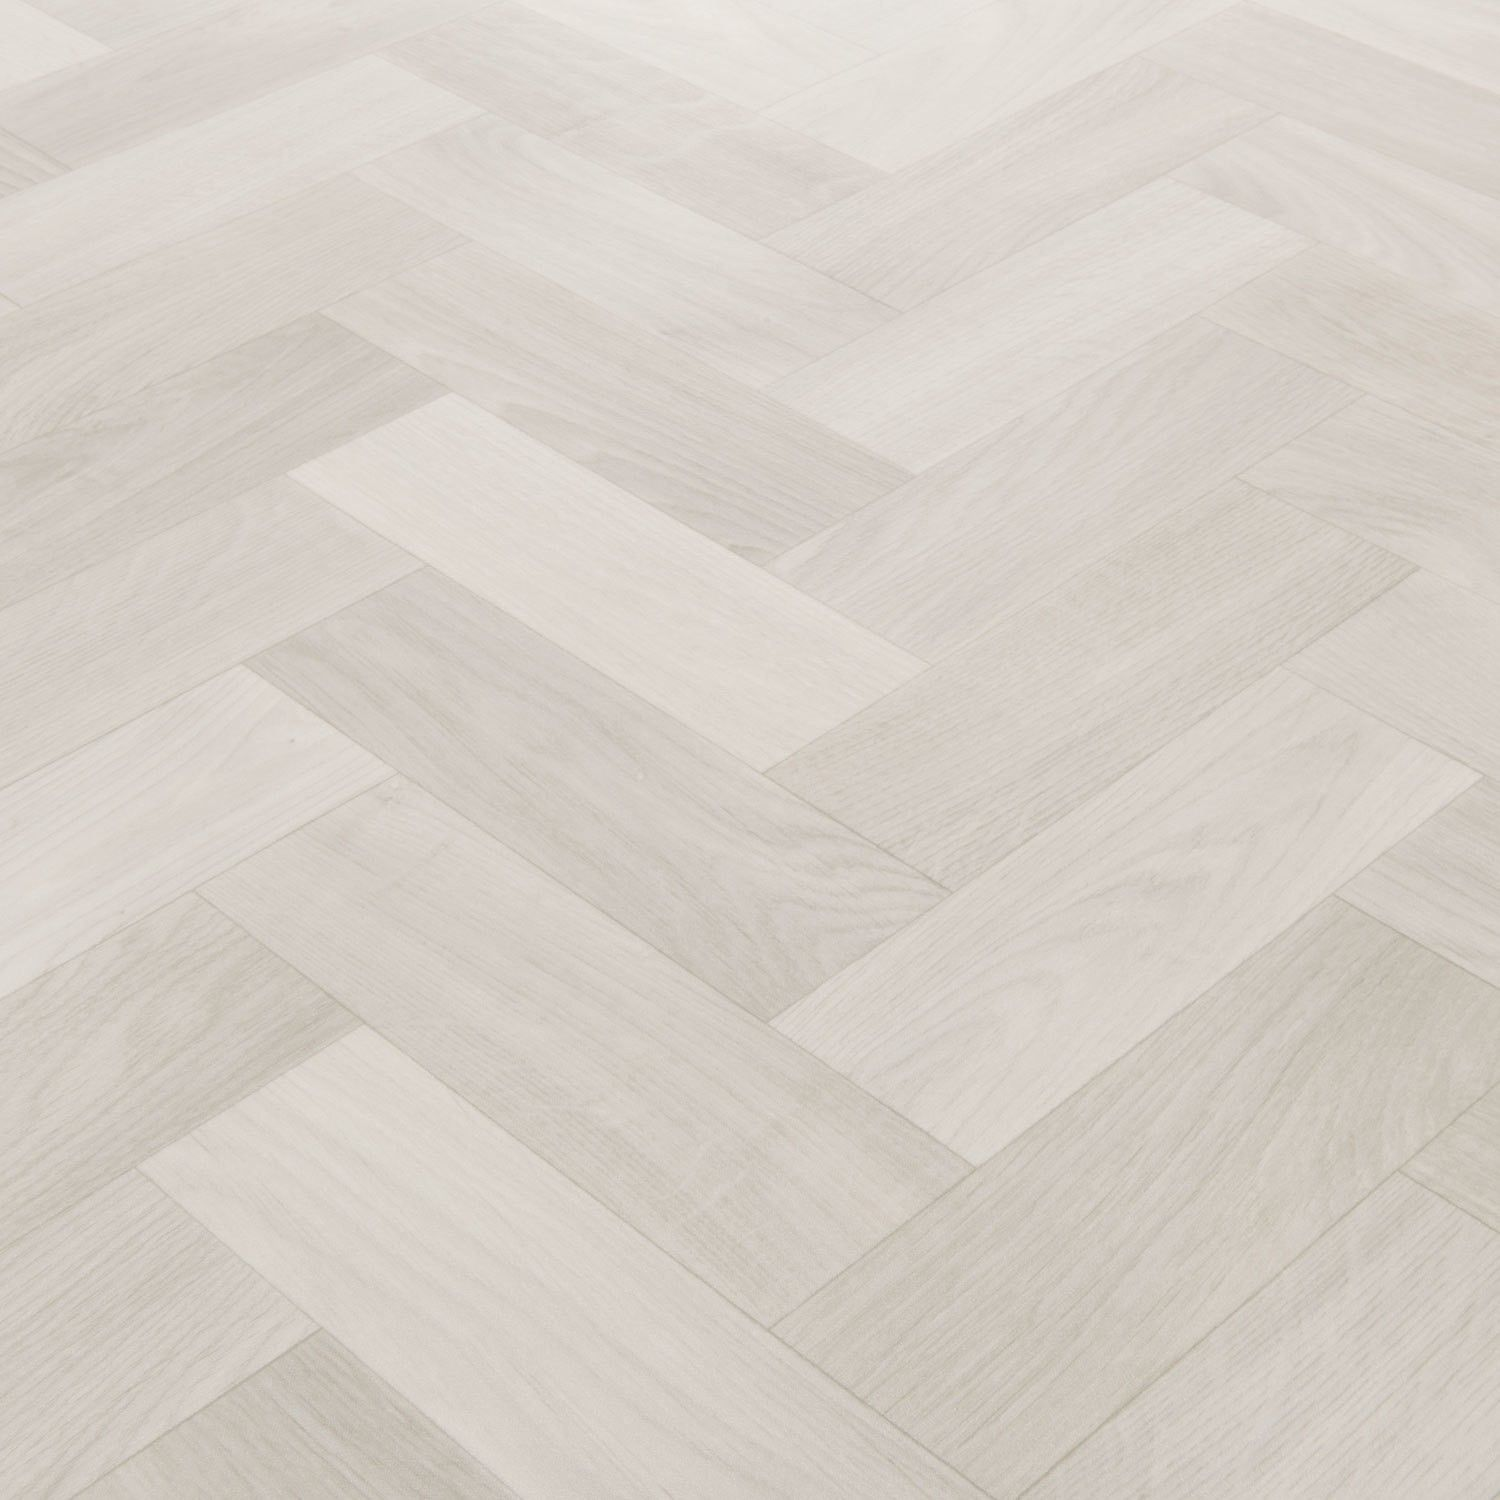 Perfection 508 Sintra Vinyl Flooring | Hall | Pinterest